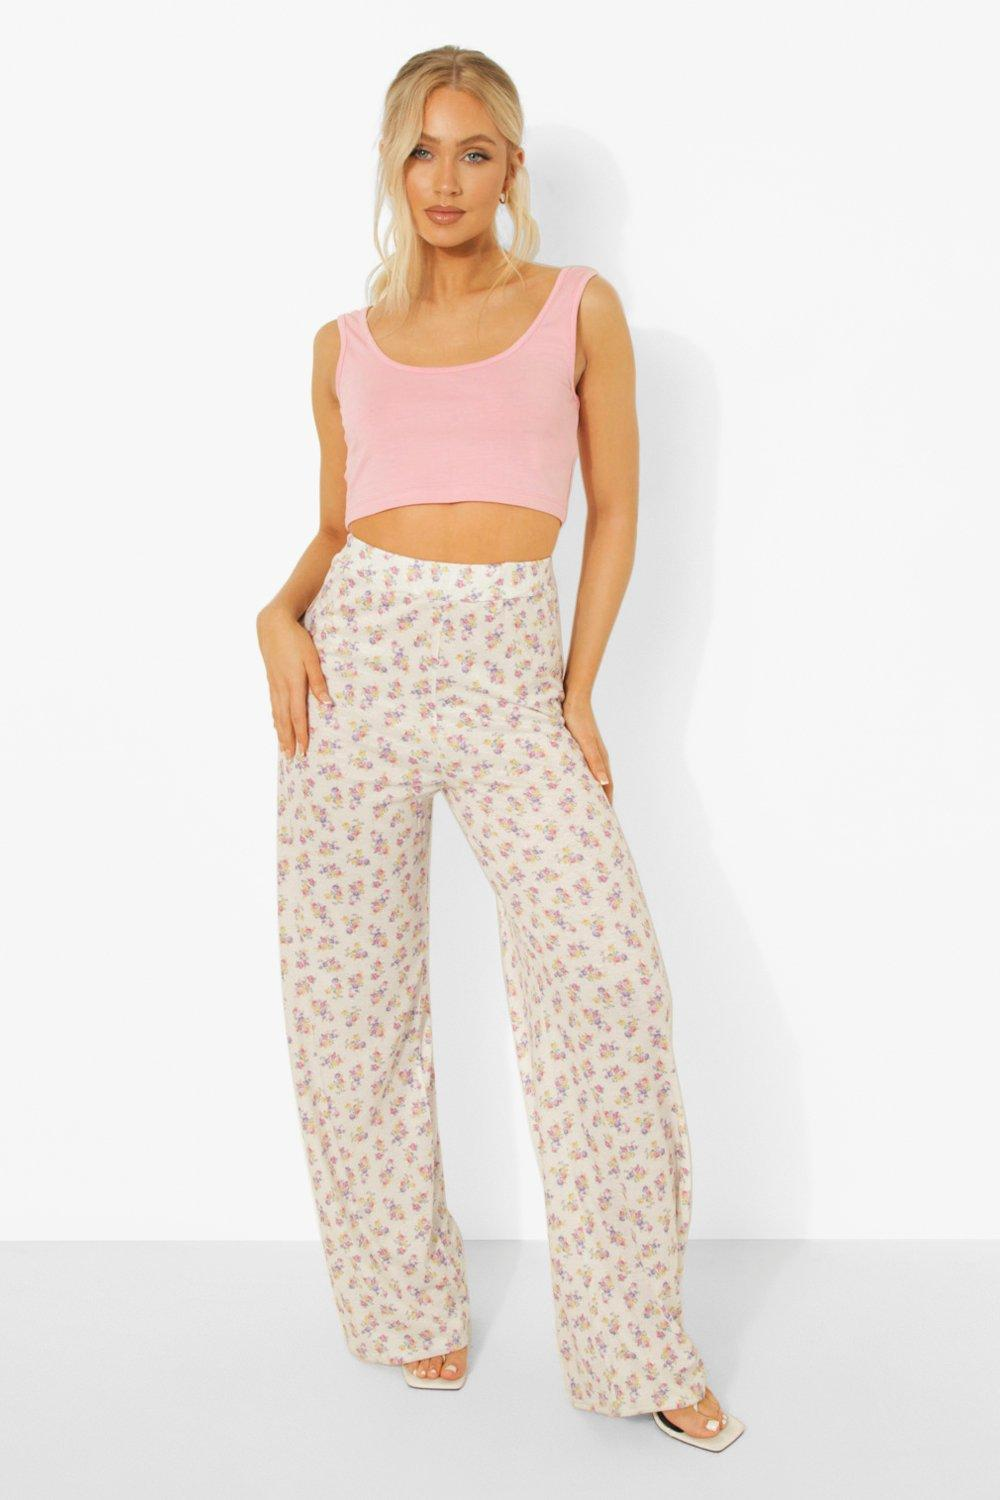 Cottagecore Clothing, Soft Aesthetic Womens Ditsy Floral Wide Leg Pants - White - 12 $14.40 AT vintagedancer.com